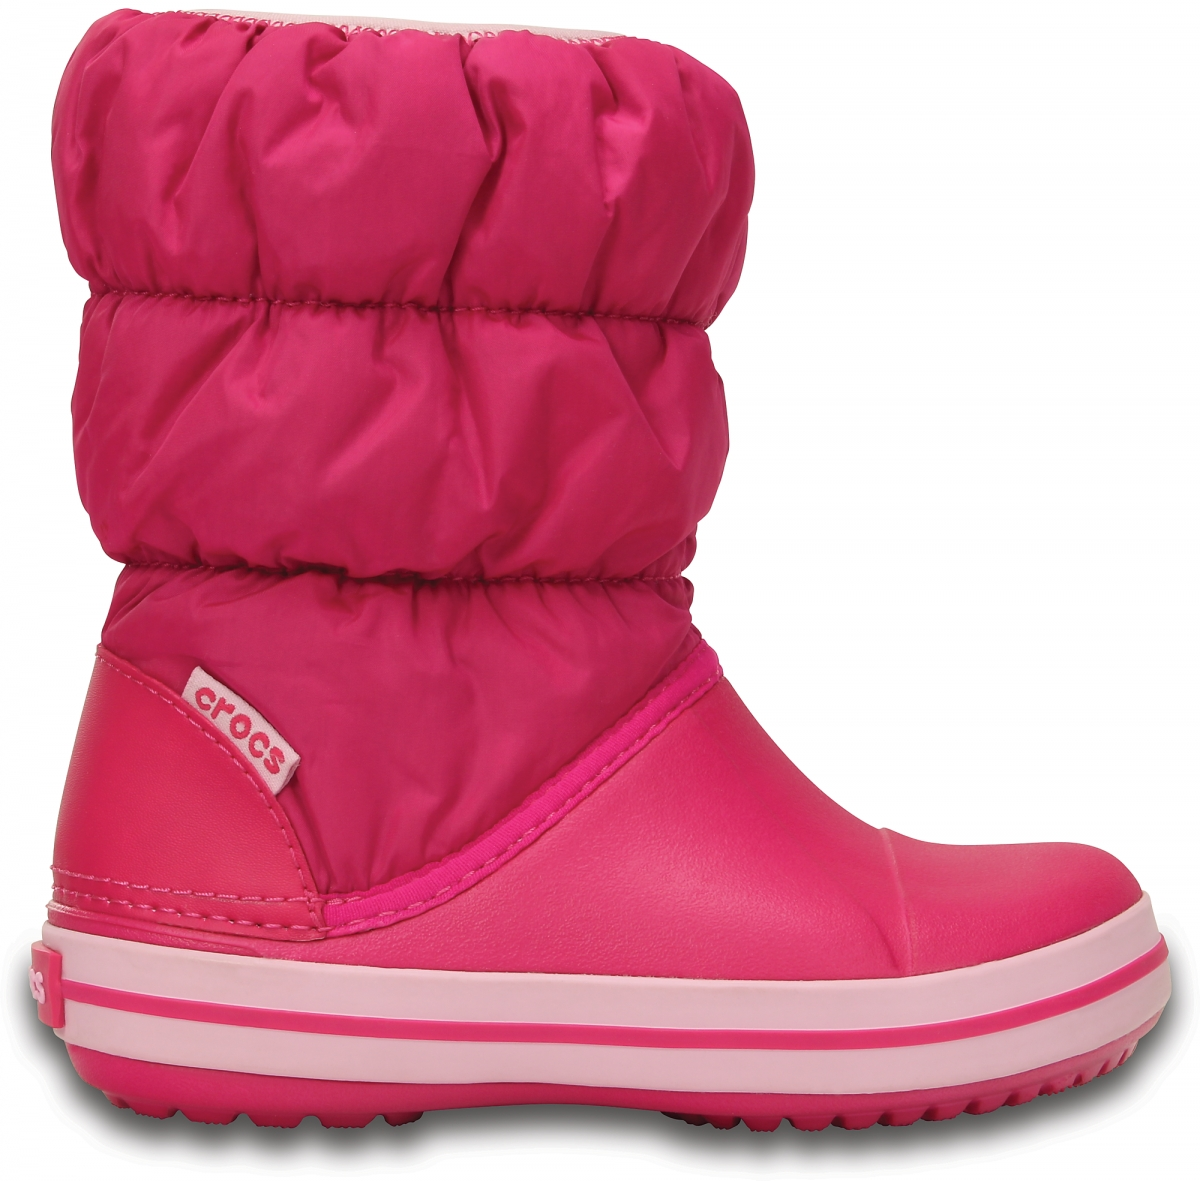 Crocs Winter Puff Boot Kids - Candy Pink, J3 (34-35)